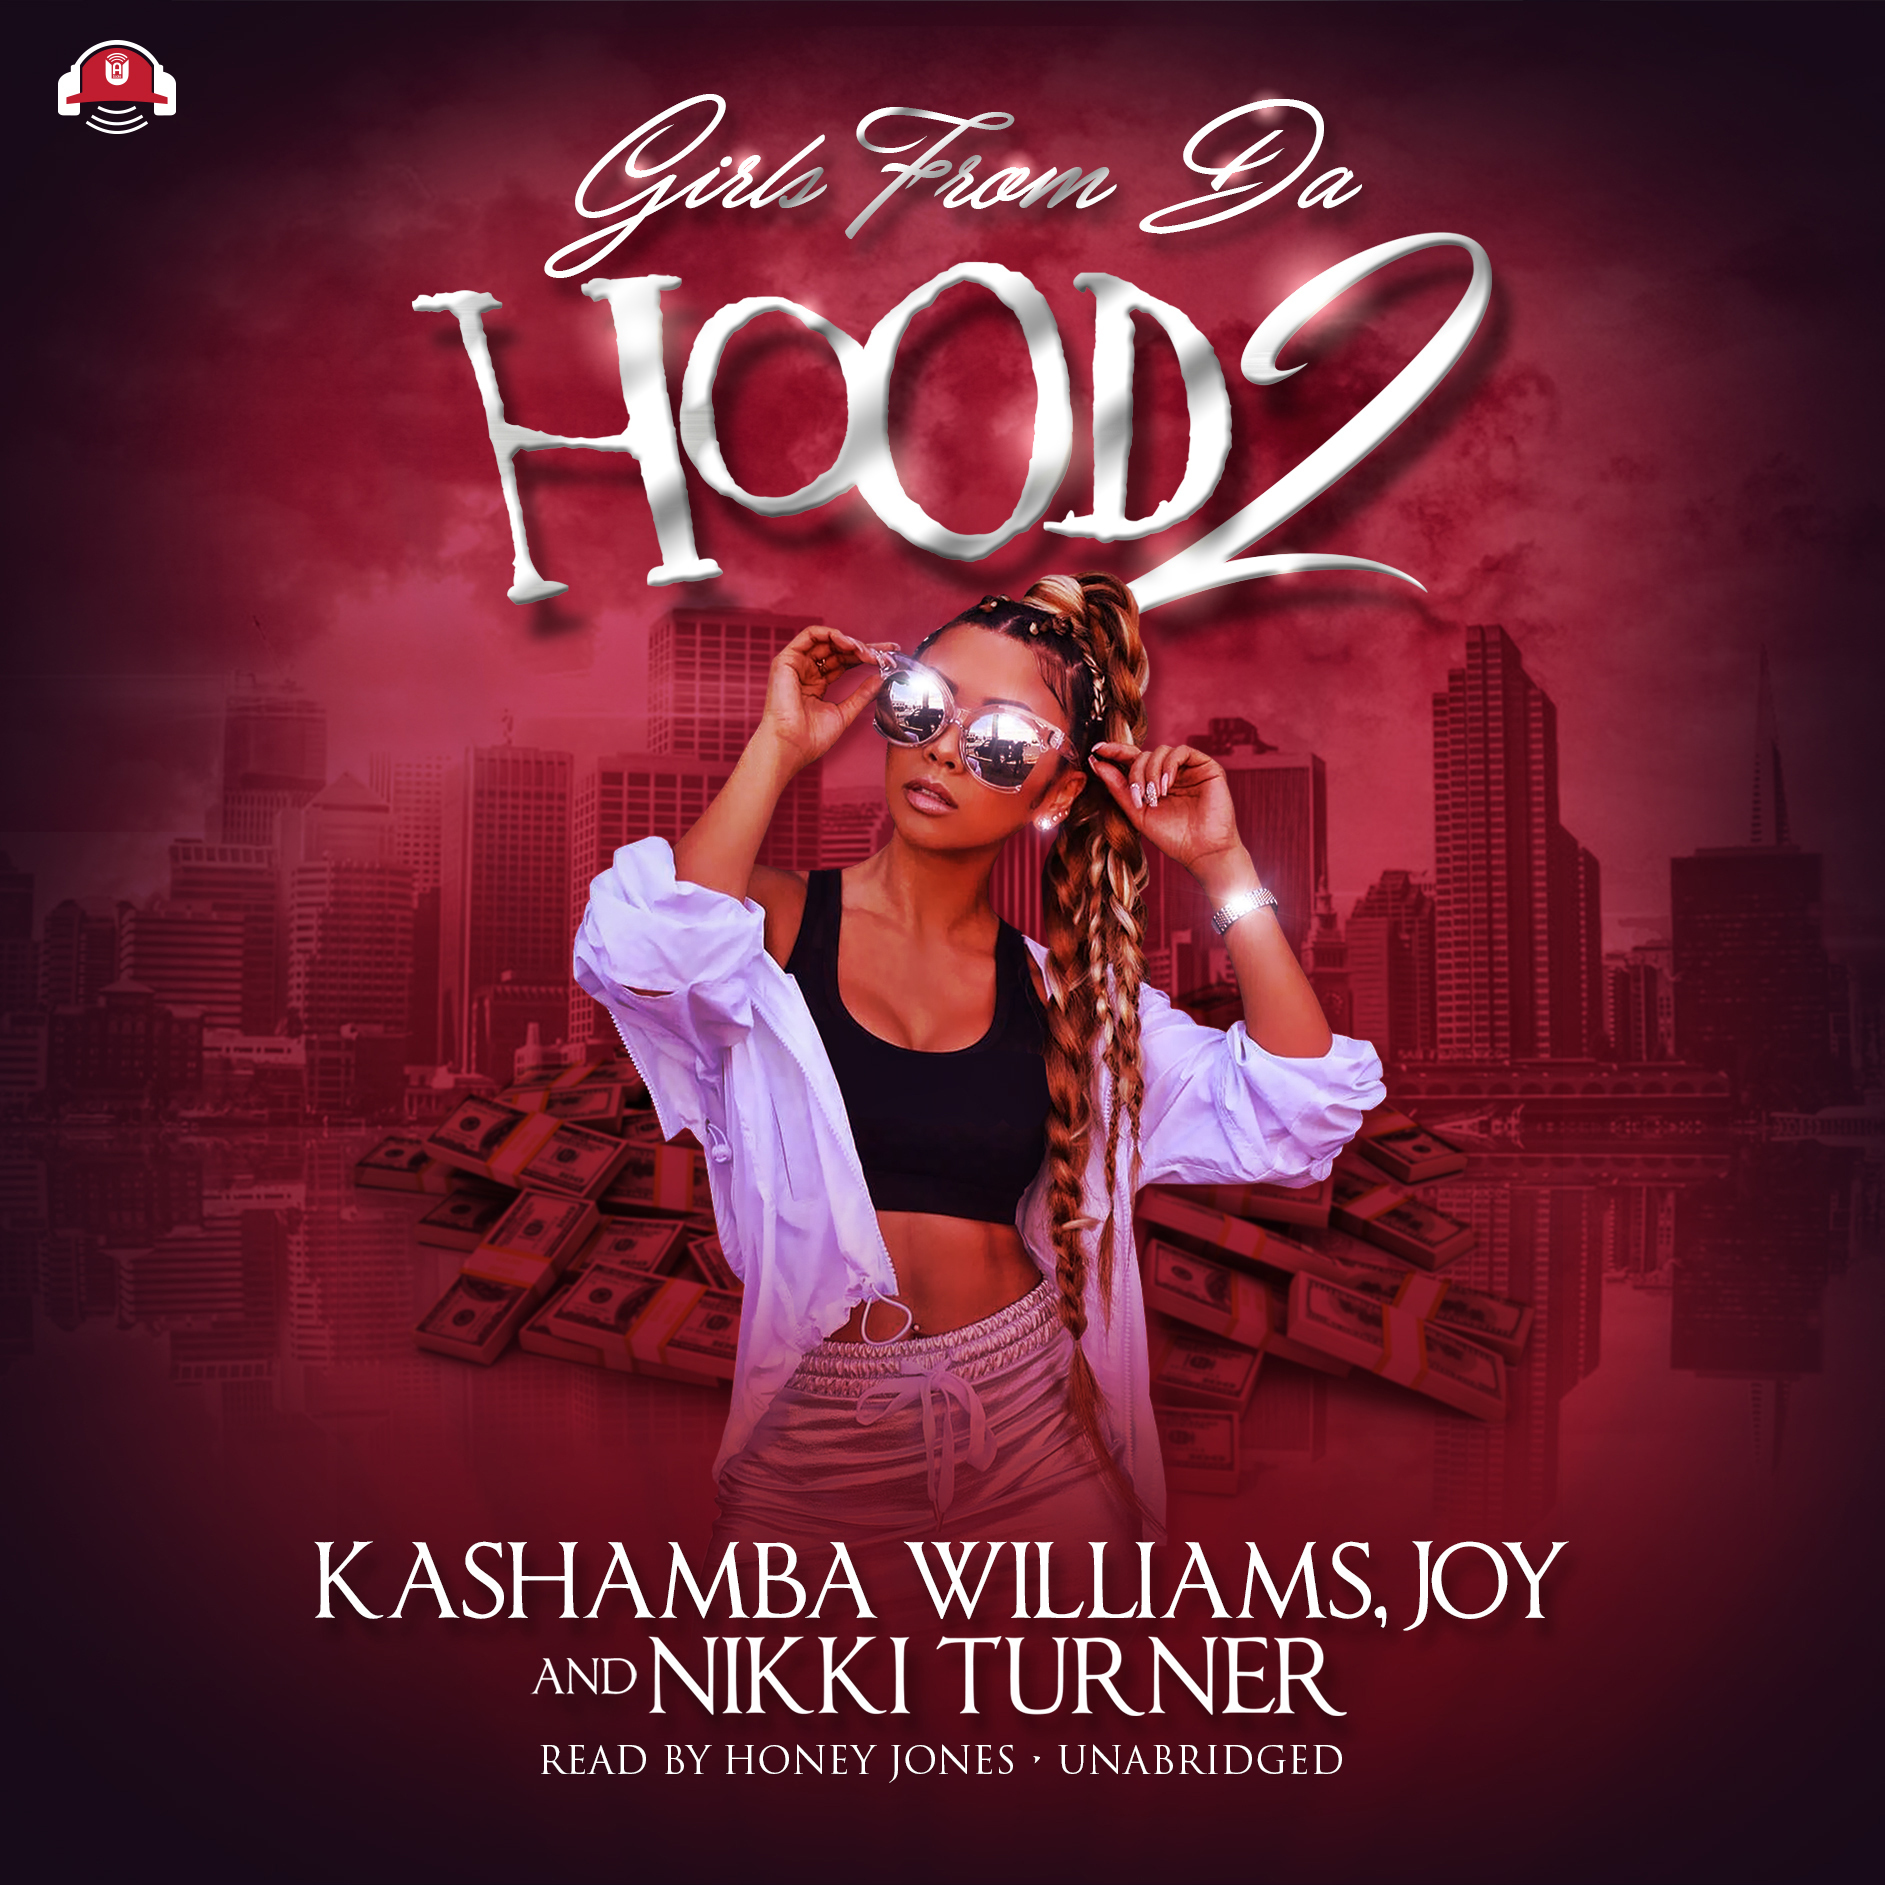 Printable Girls from da Hood 2 Audiobook Cover Art